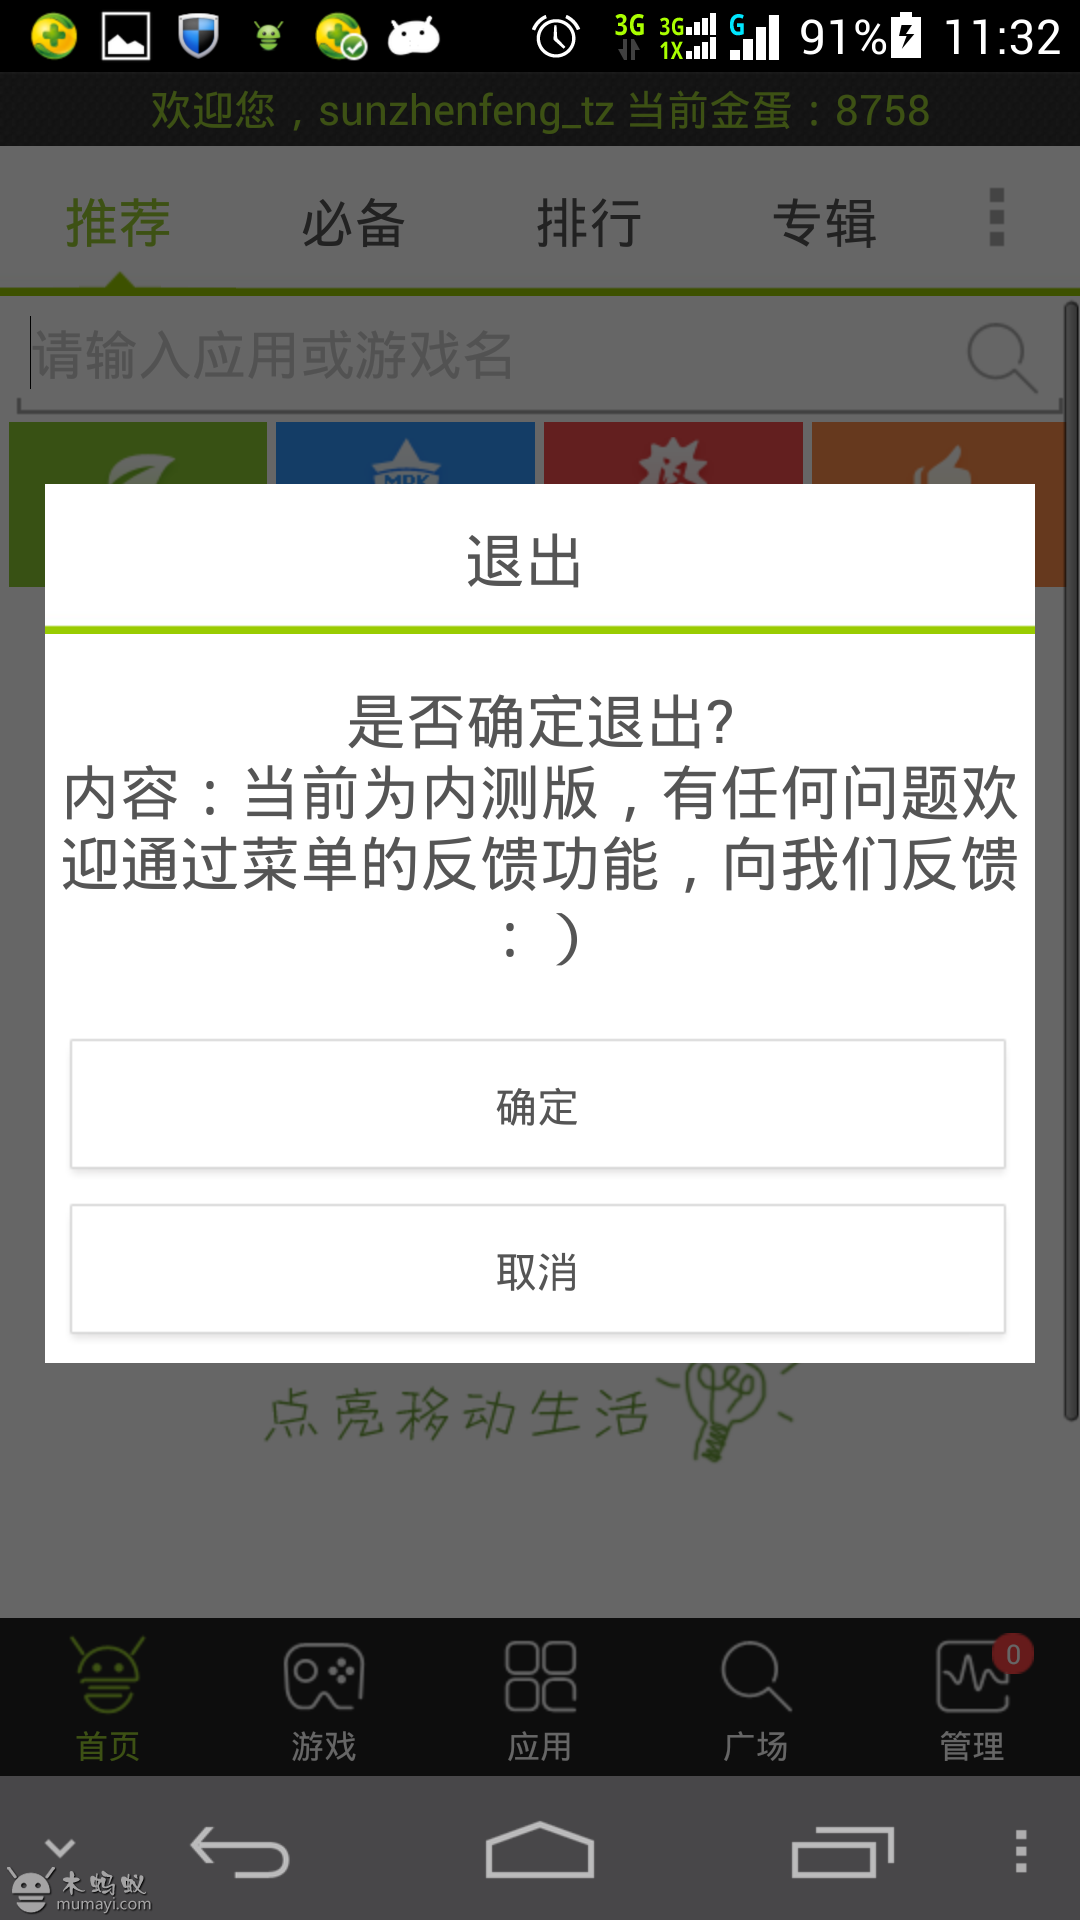 Screenshot_2013-12-05-11-32-13.png